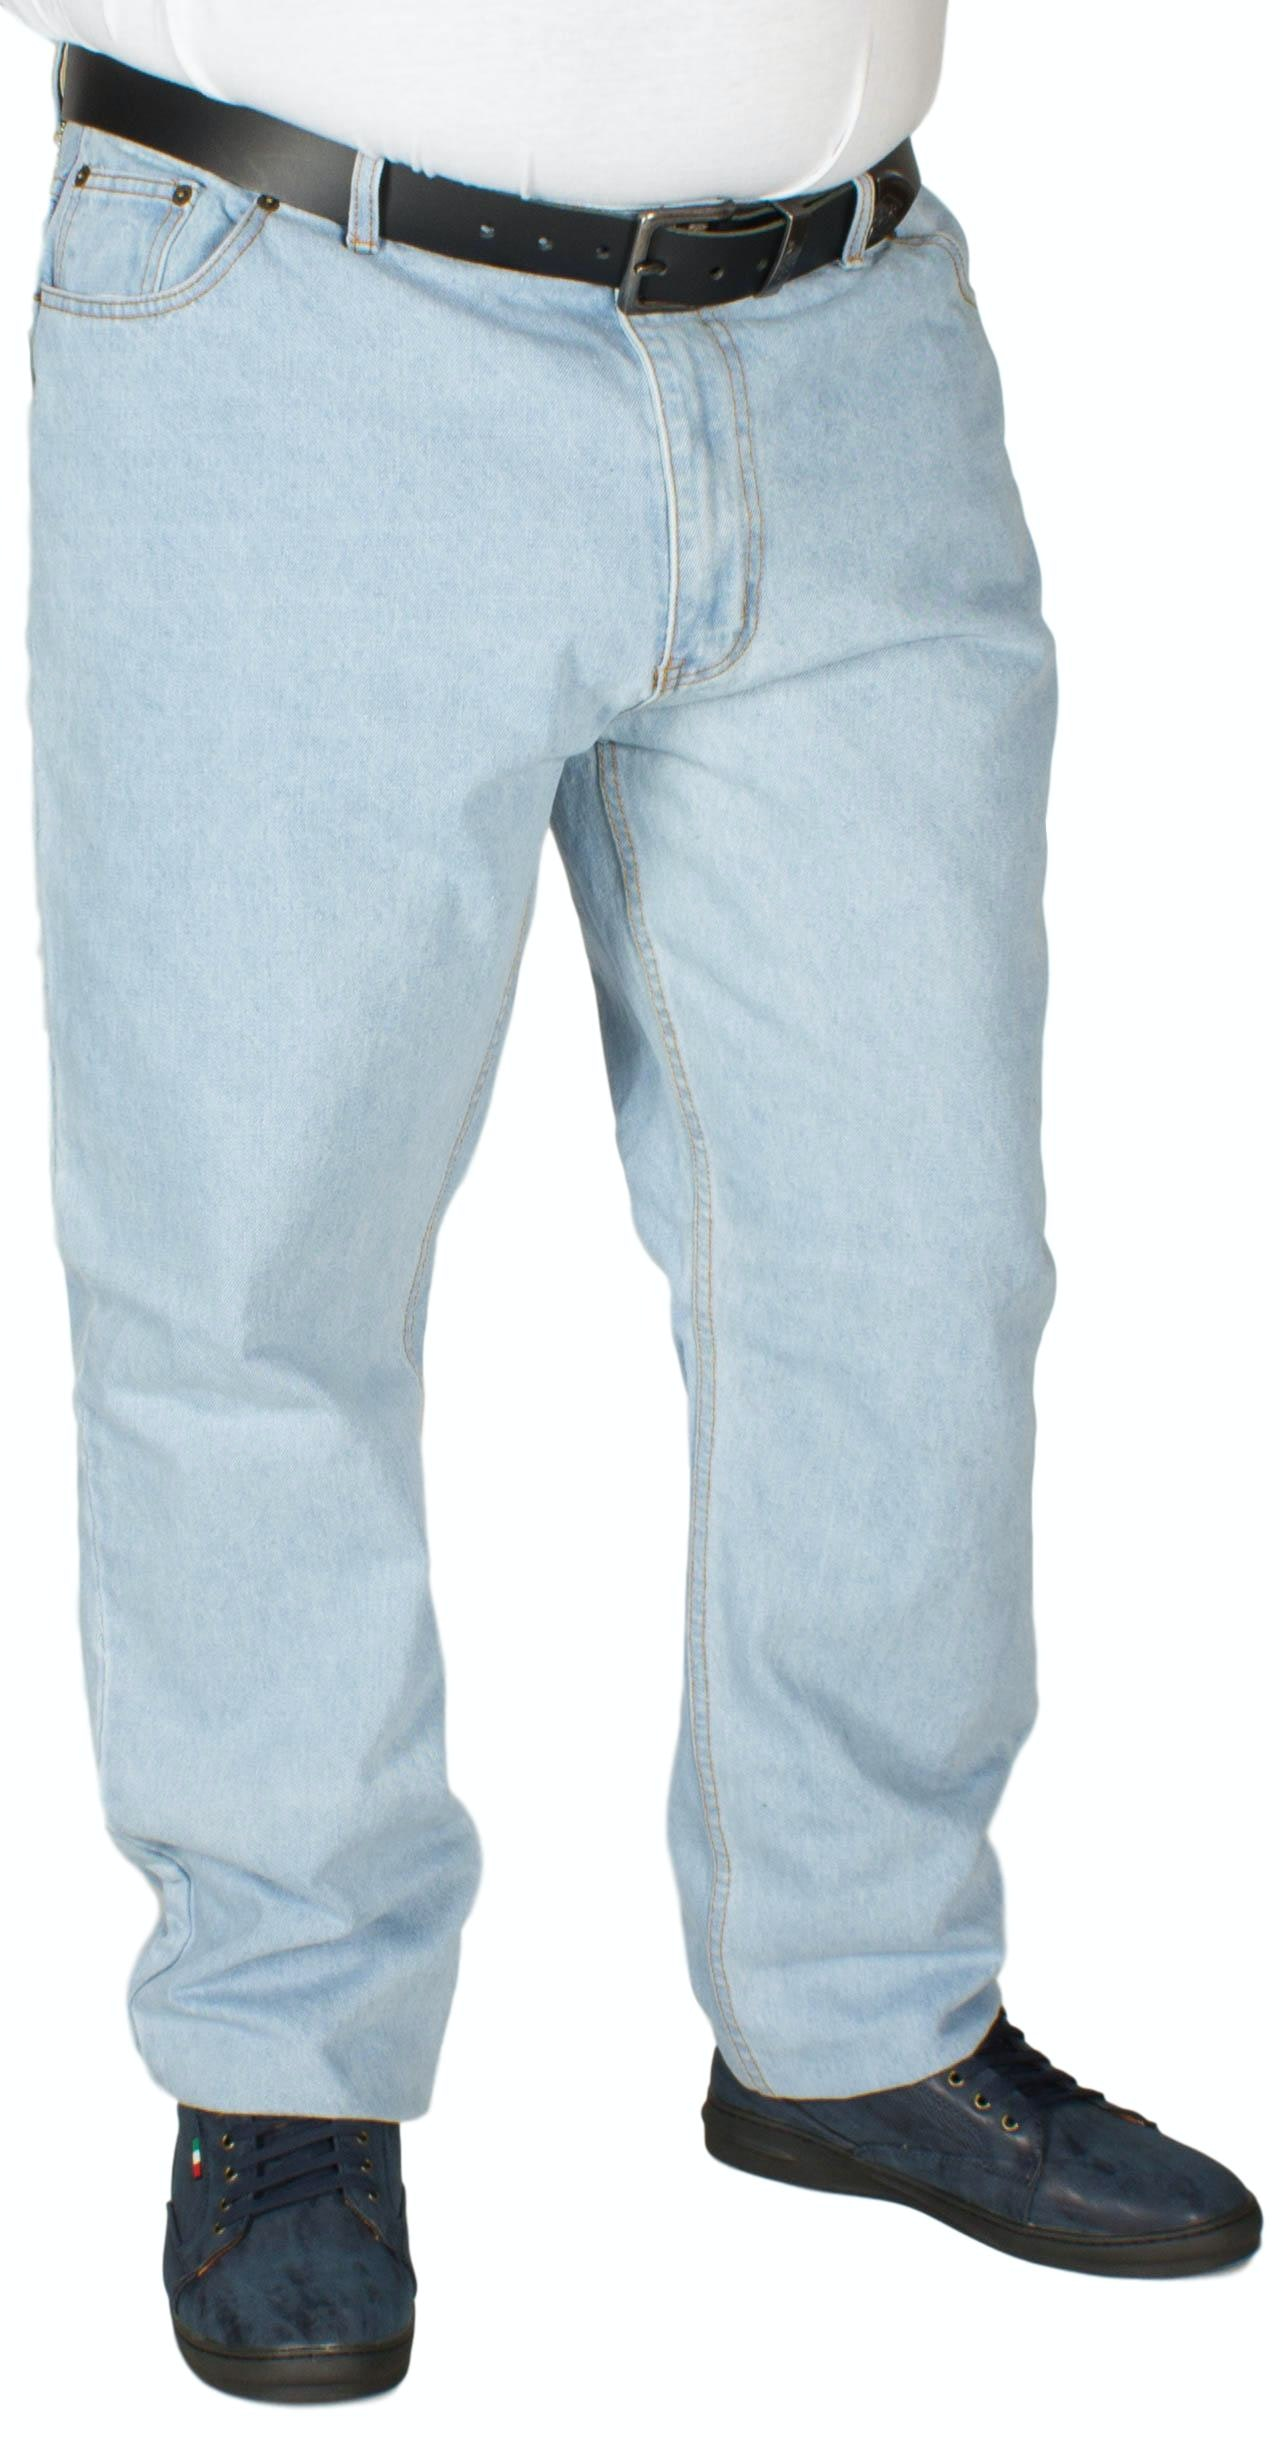 Duke Rockford Comfort Fit Bleach Jeans